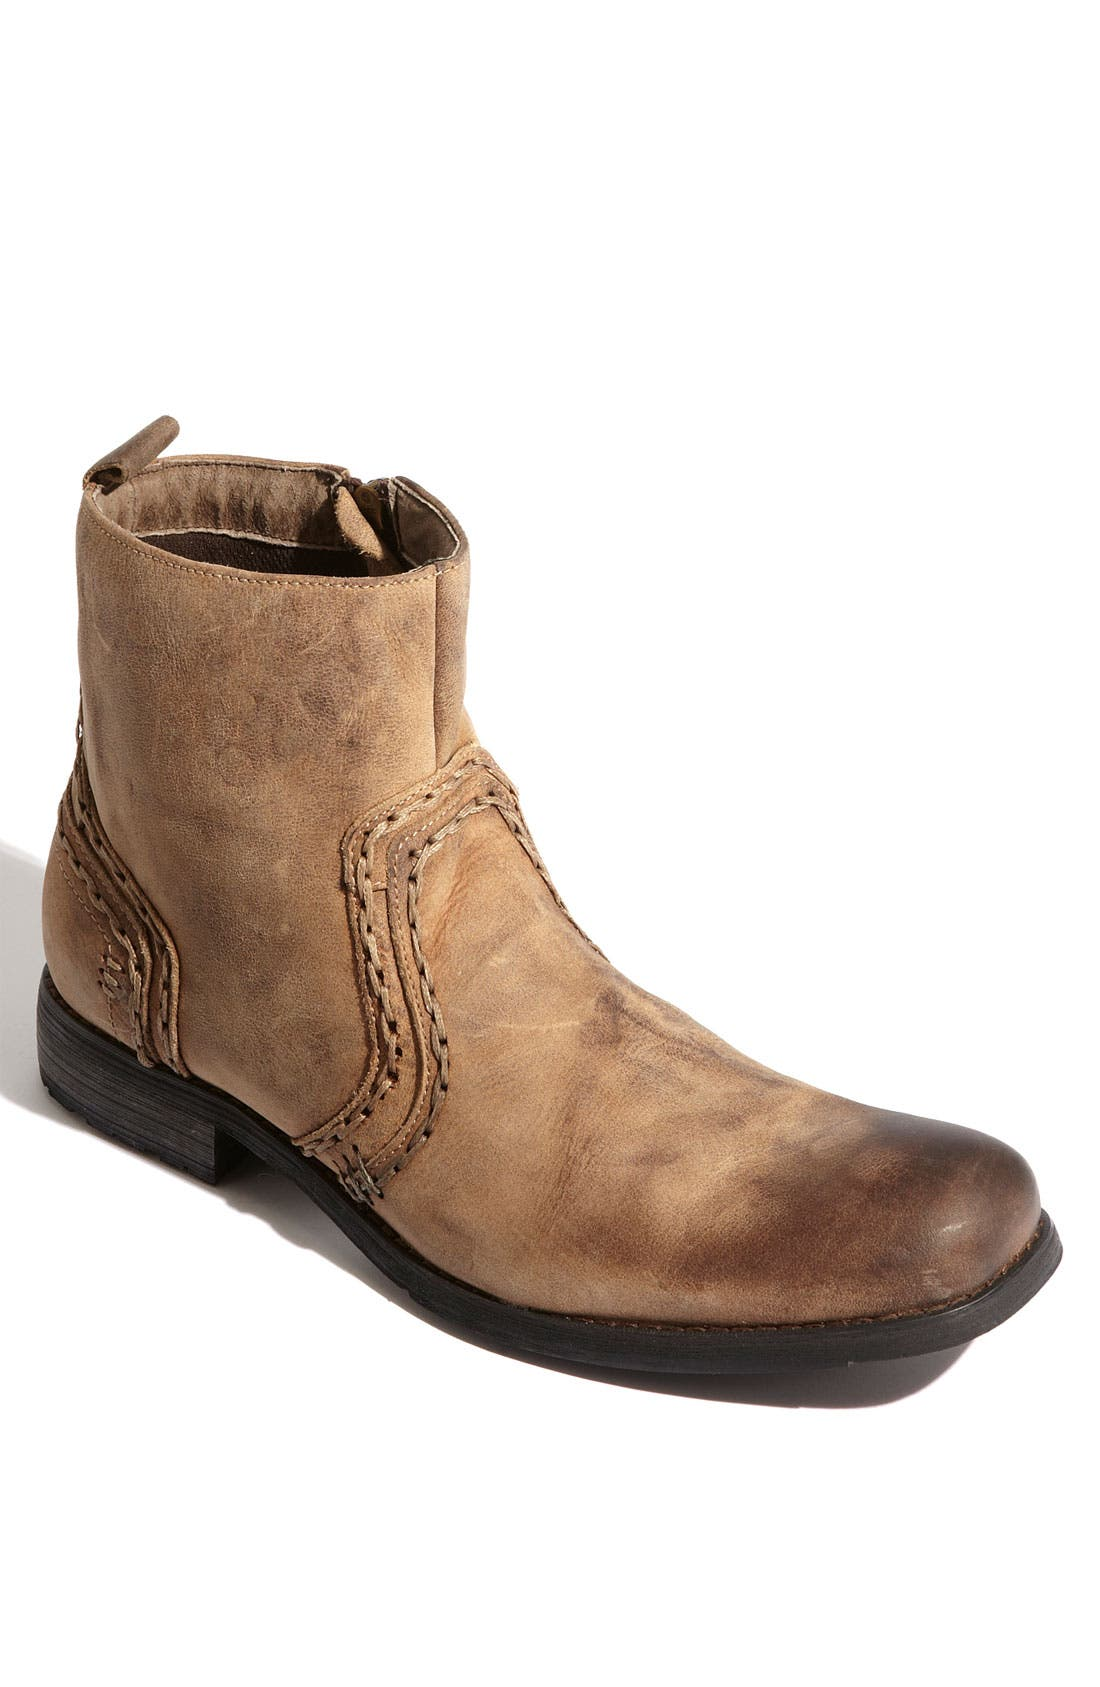 Alternate Image 1 Selected - Bed Stu 'Revolution' Boot (Men)